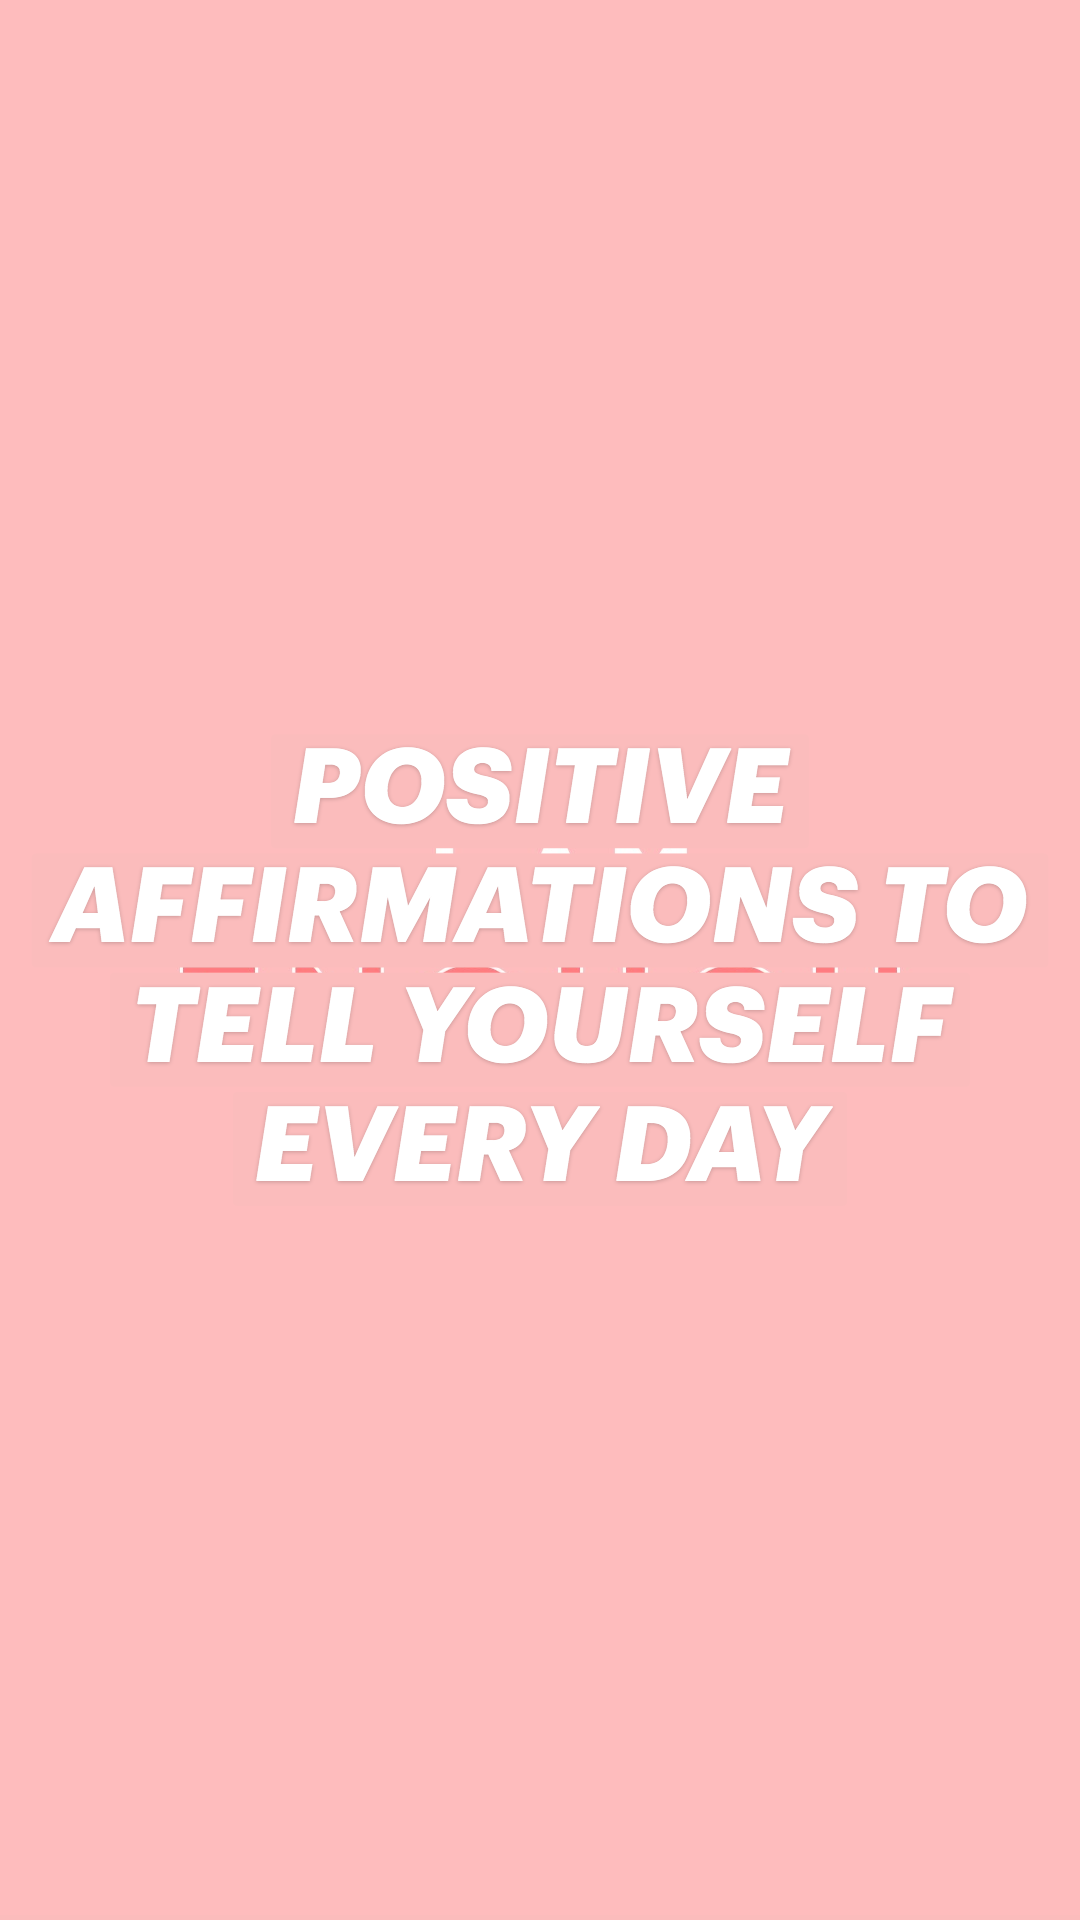 Positive Affirmations to tell yourself every day